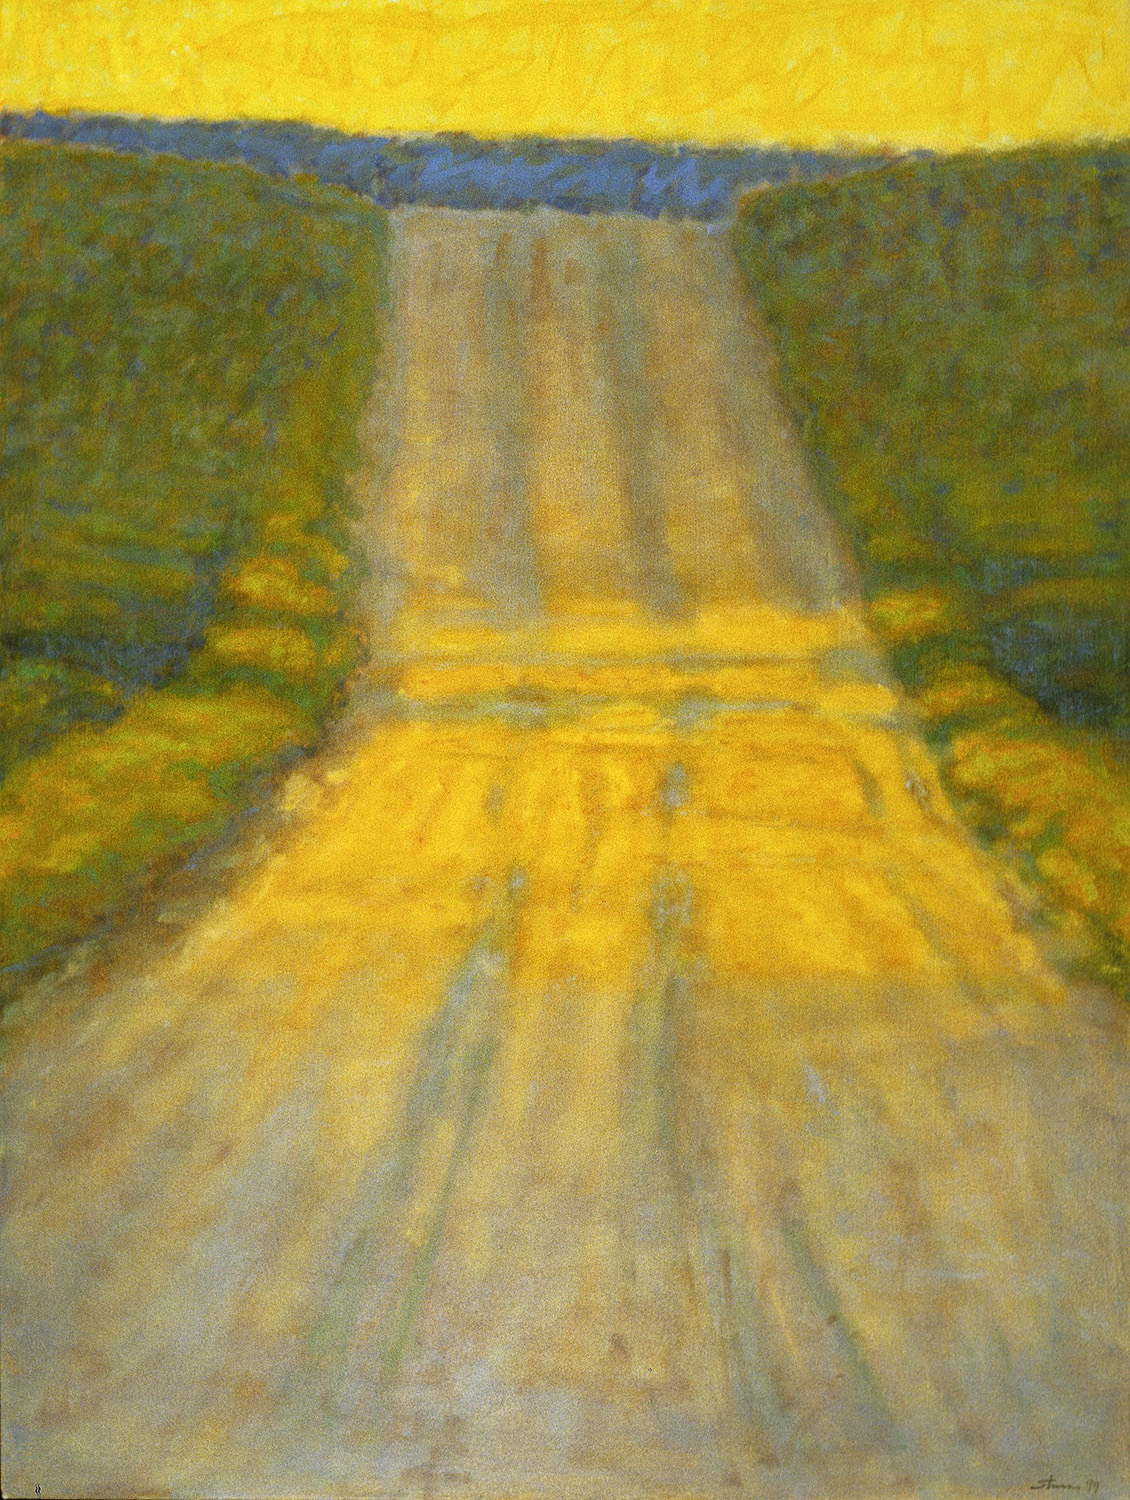 Country Road  | oil on canvas | 48 x 36"